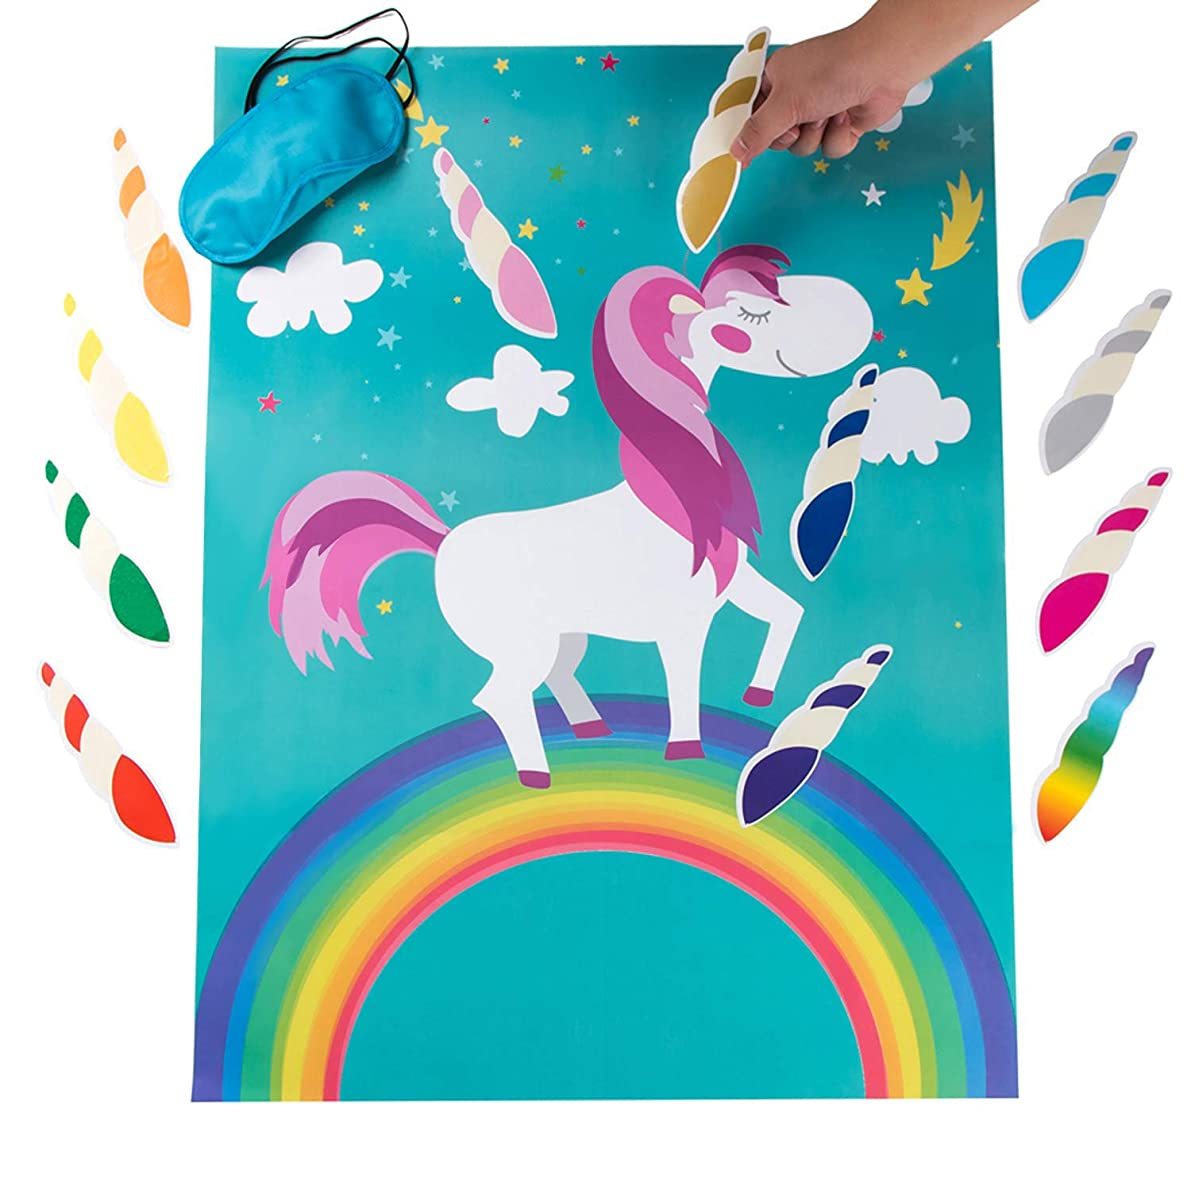 MISS FANTASY Pin The Horn on The Unicorn Birthday Party Favor Games Kids Party Supplies Unicorn Gifts for Girls Game Include a Large Poster 24 Reusable Sticker Horns Good for Big Parties